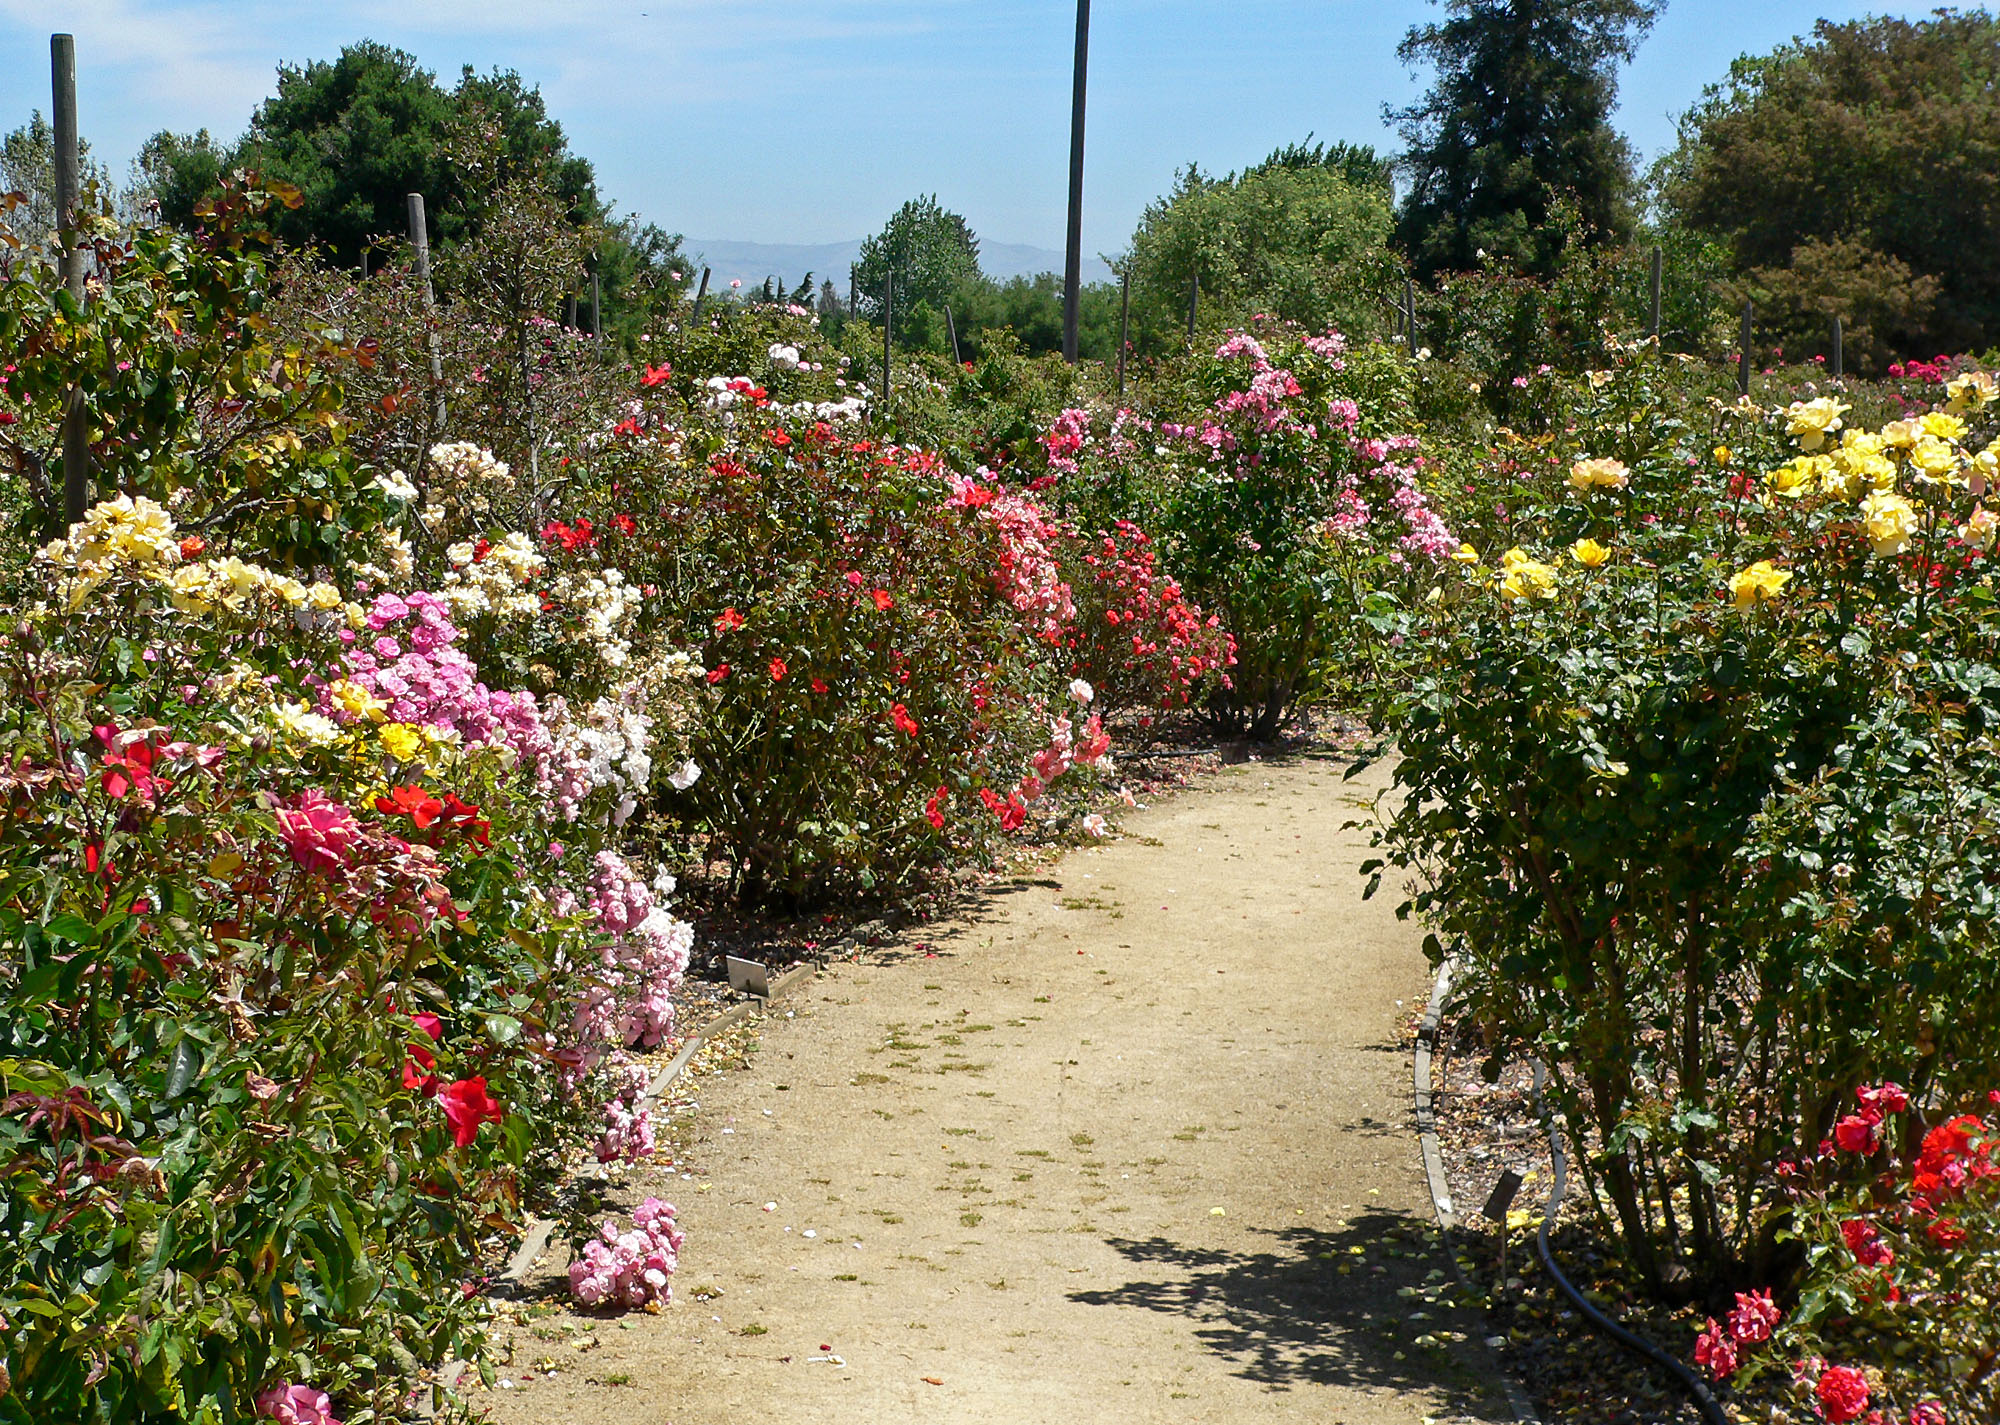 Passionate Progressive Patriot A Tale Of Two Municipal Rose Gardens In One City